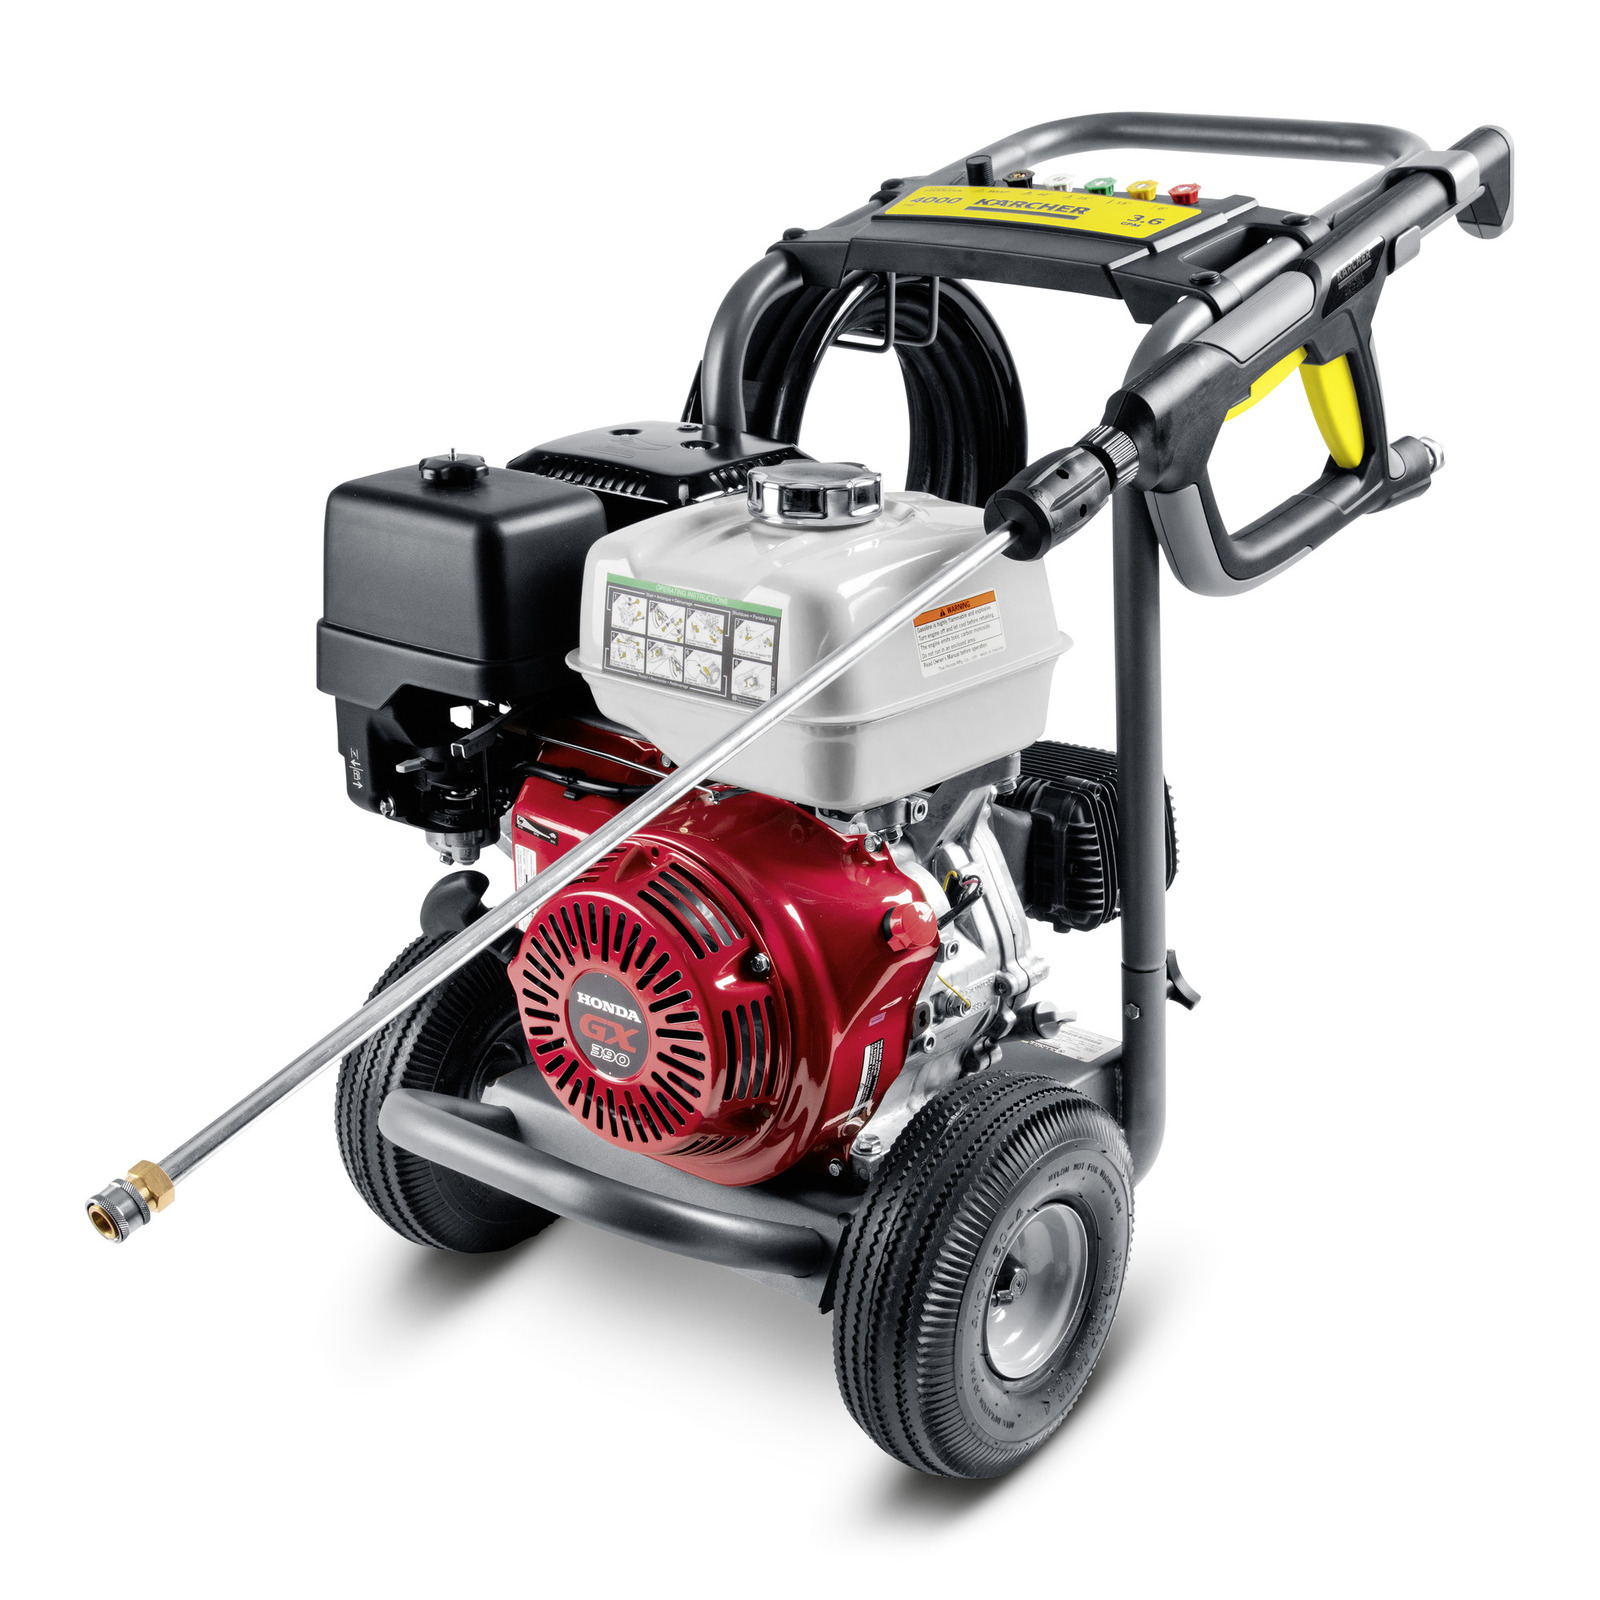 G 4000 OH Gas Powered Pressure Washer, 4000 PSI, 1 194